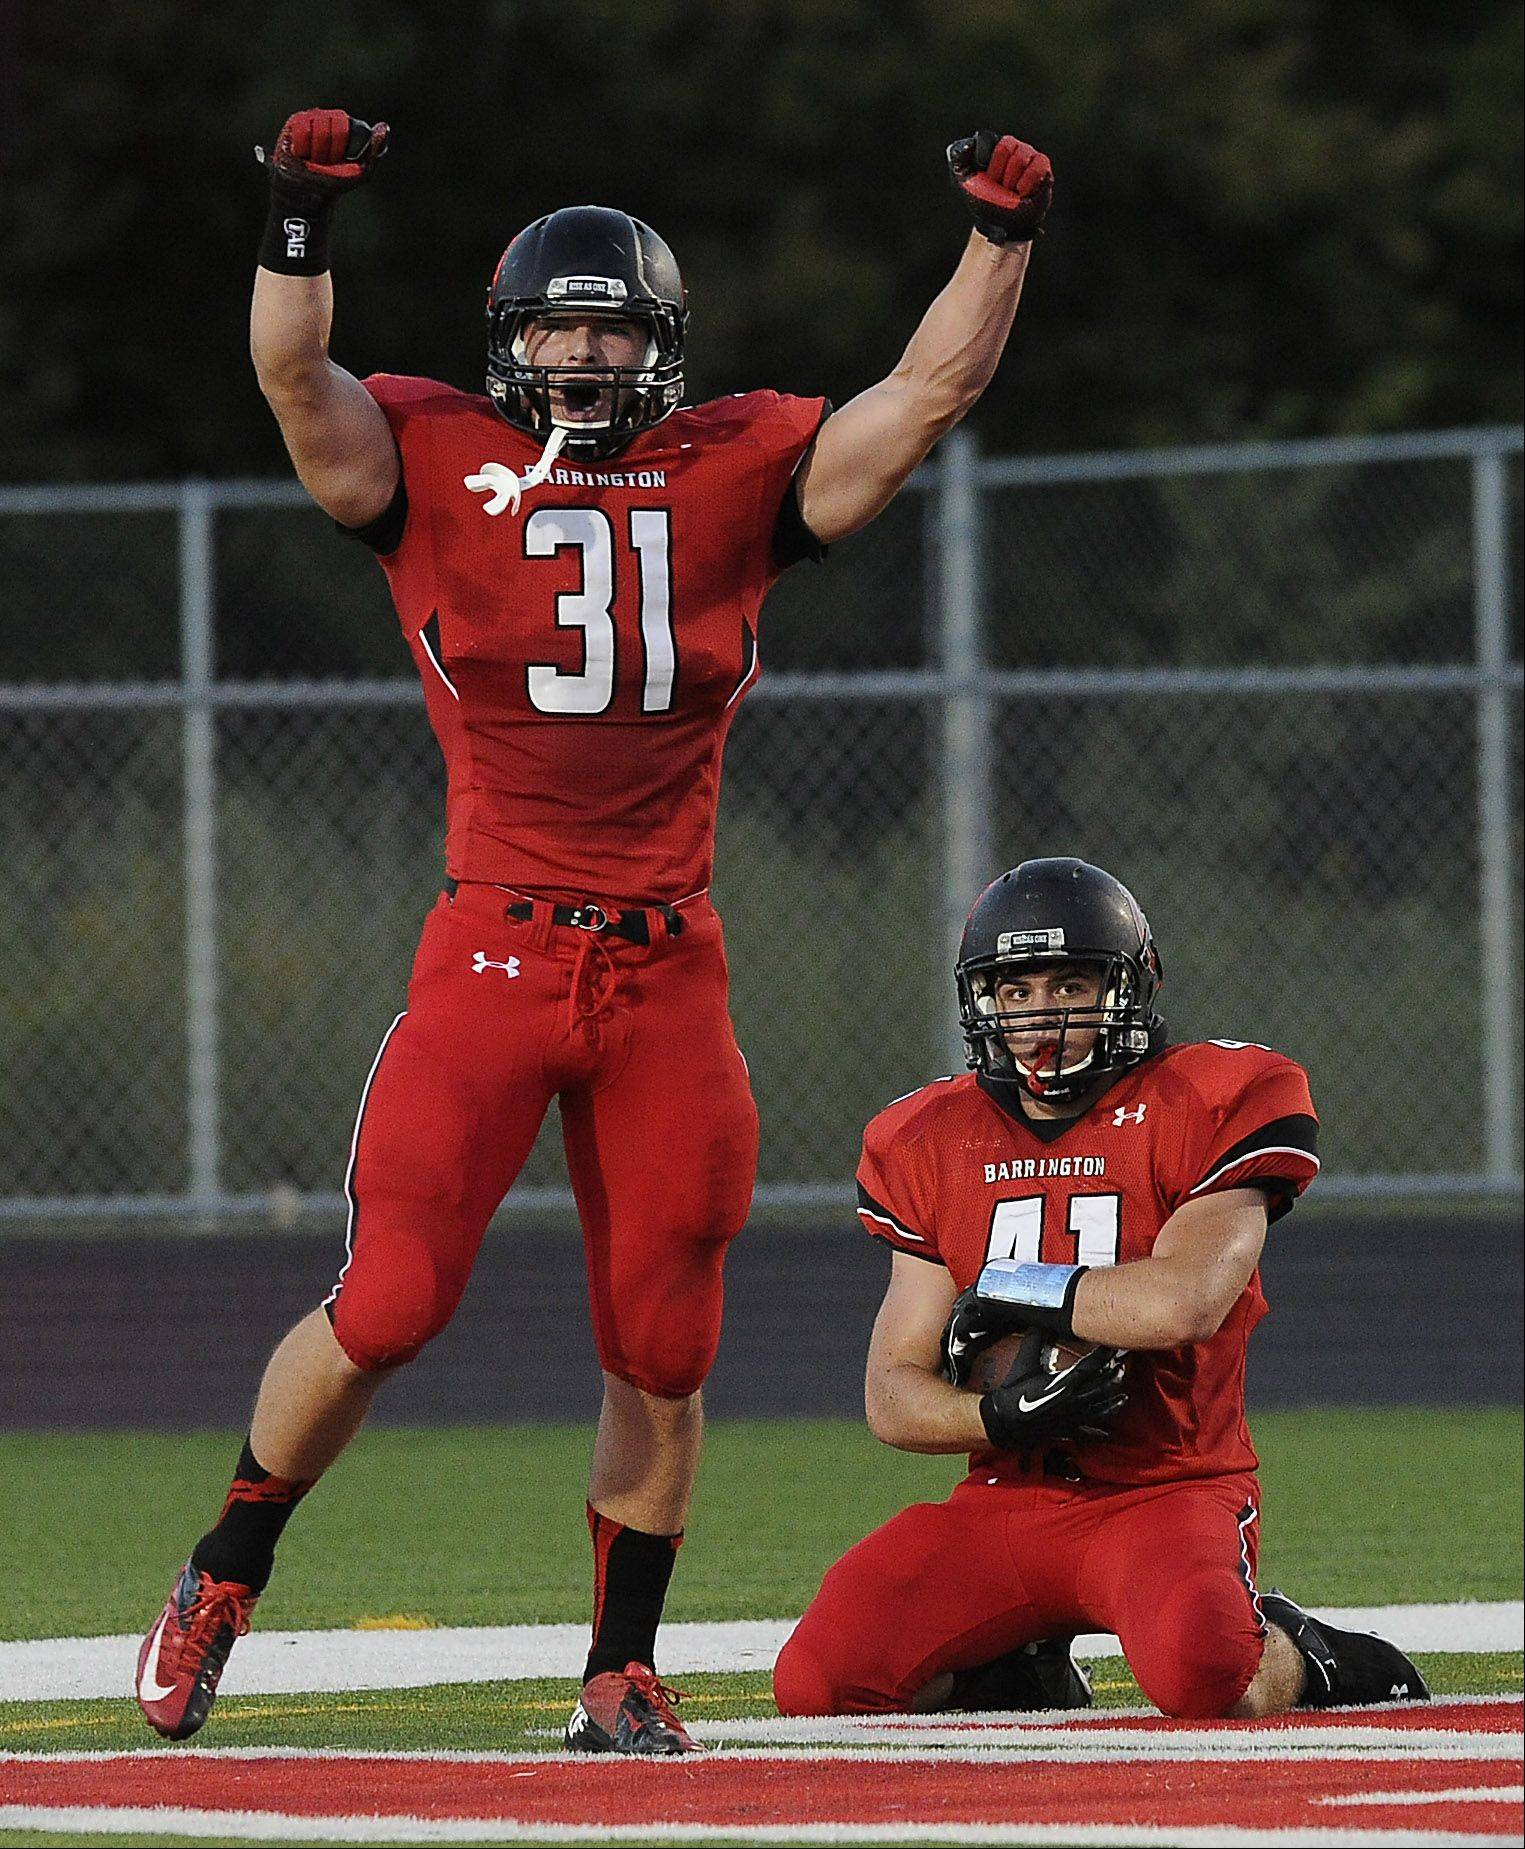 Barrington's Mark Bornhofen recovers a blocked punt as teammate Yovani Romano celebrates the play against Rolling Meadows in Barrington on Thursday.